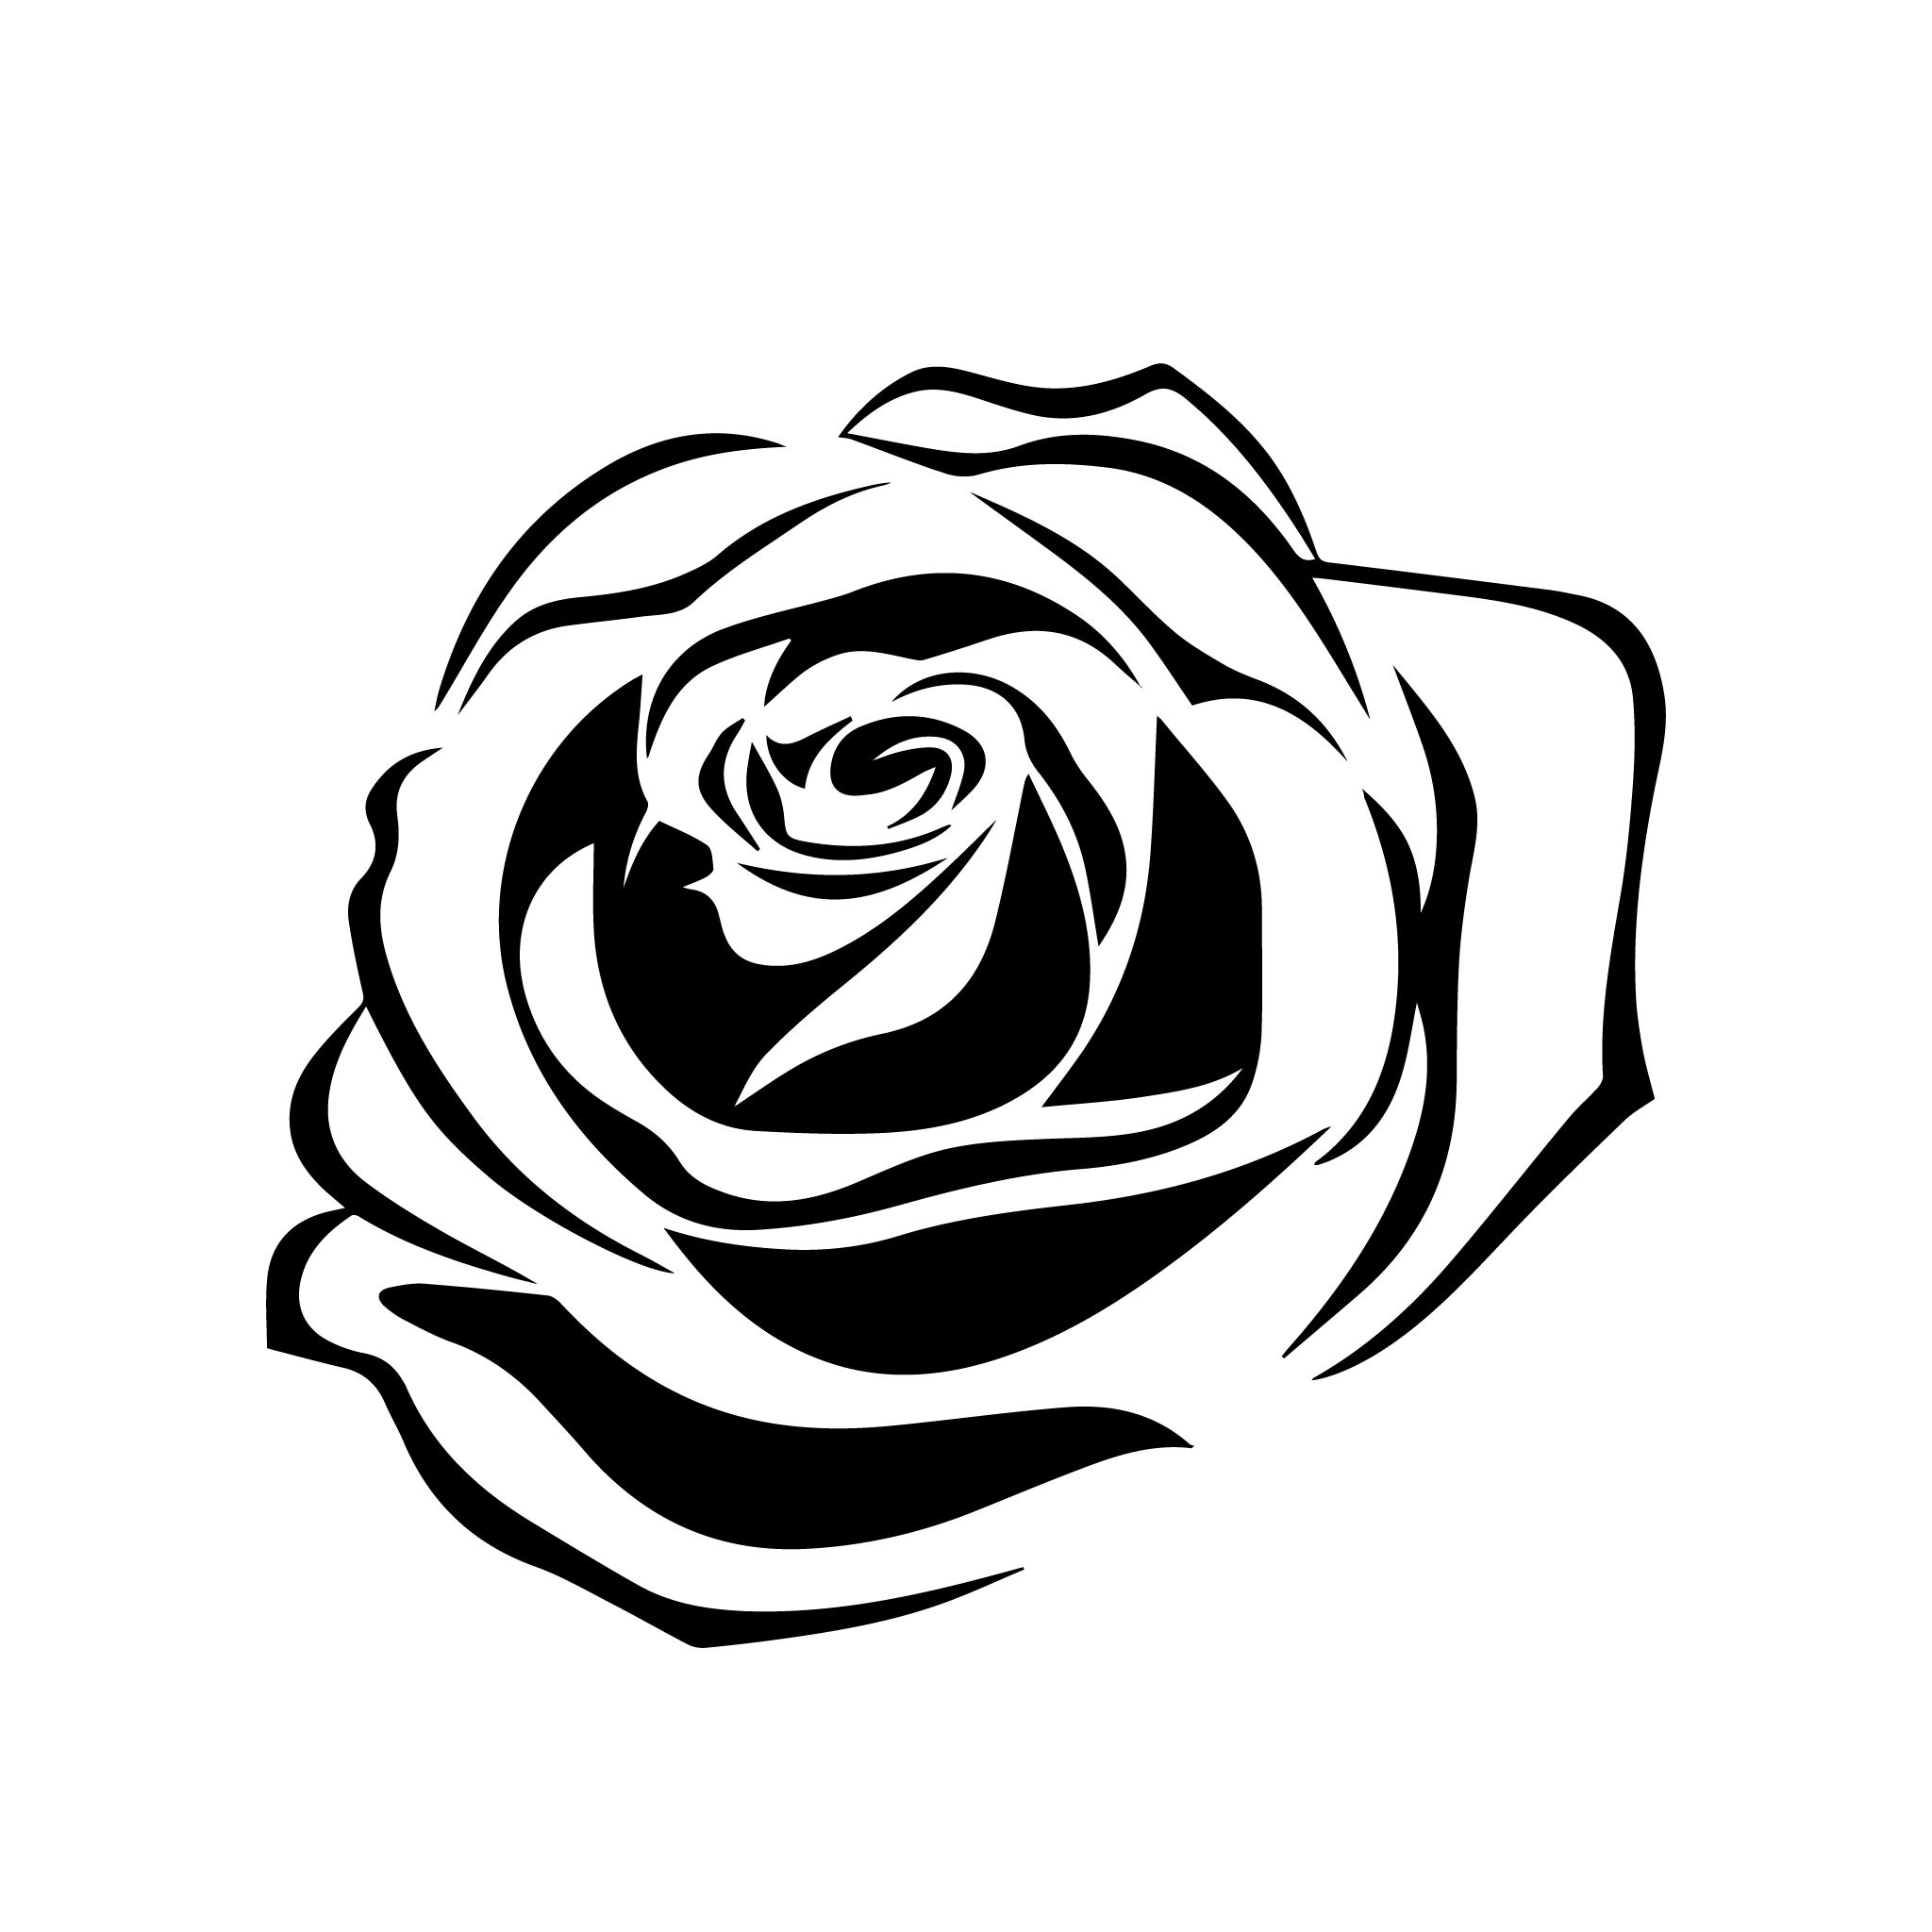 Rose Tattoo Png 5 Png Image